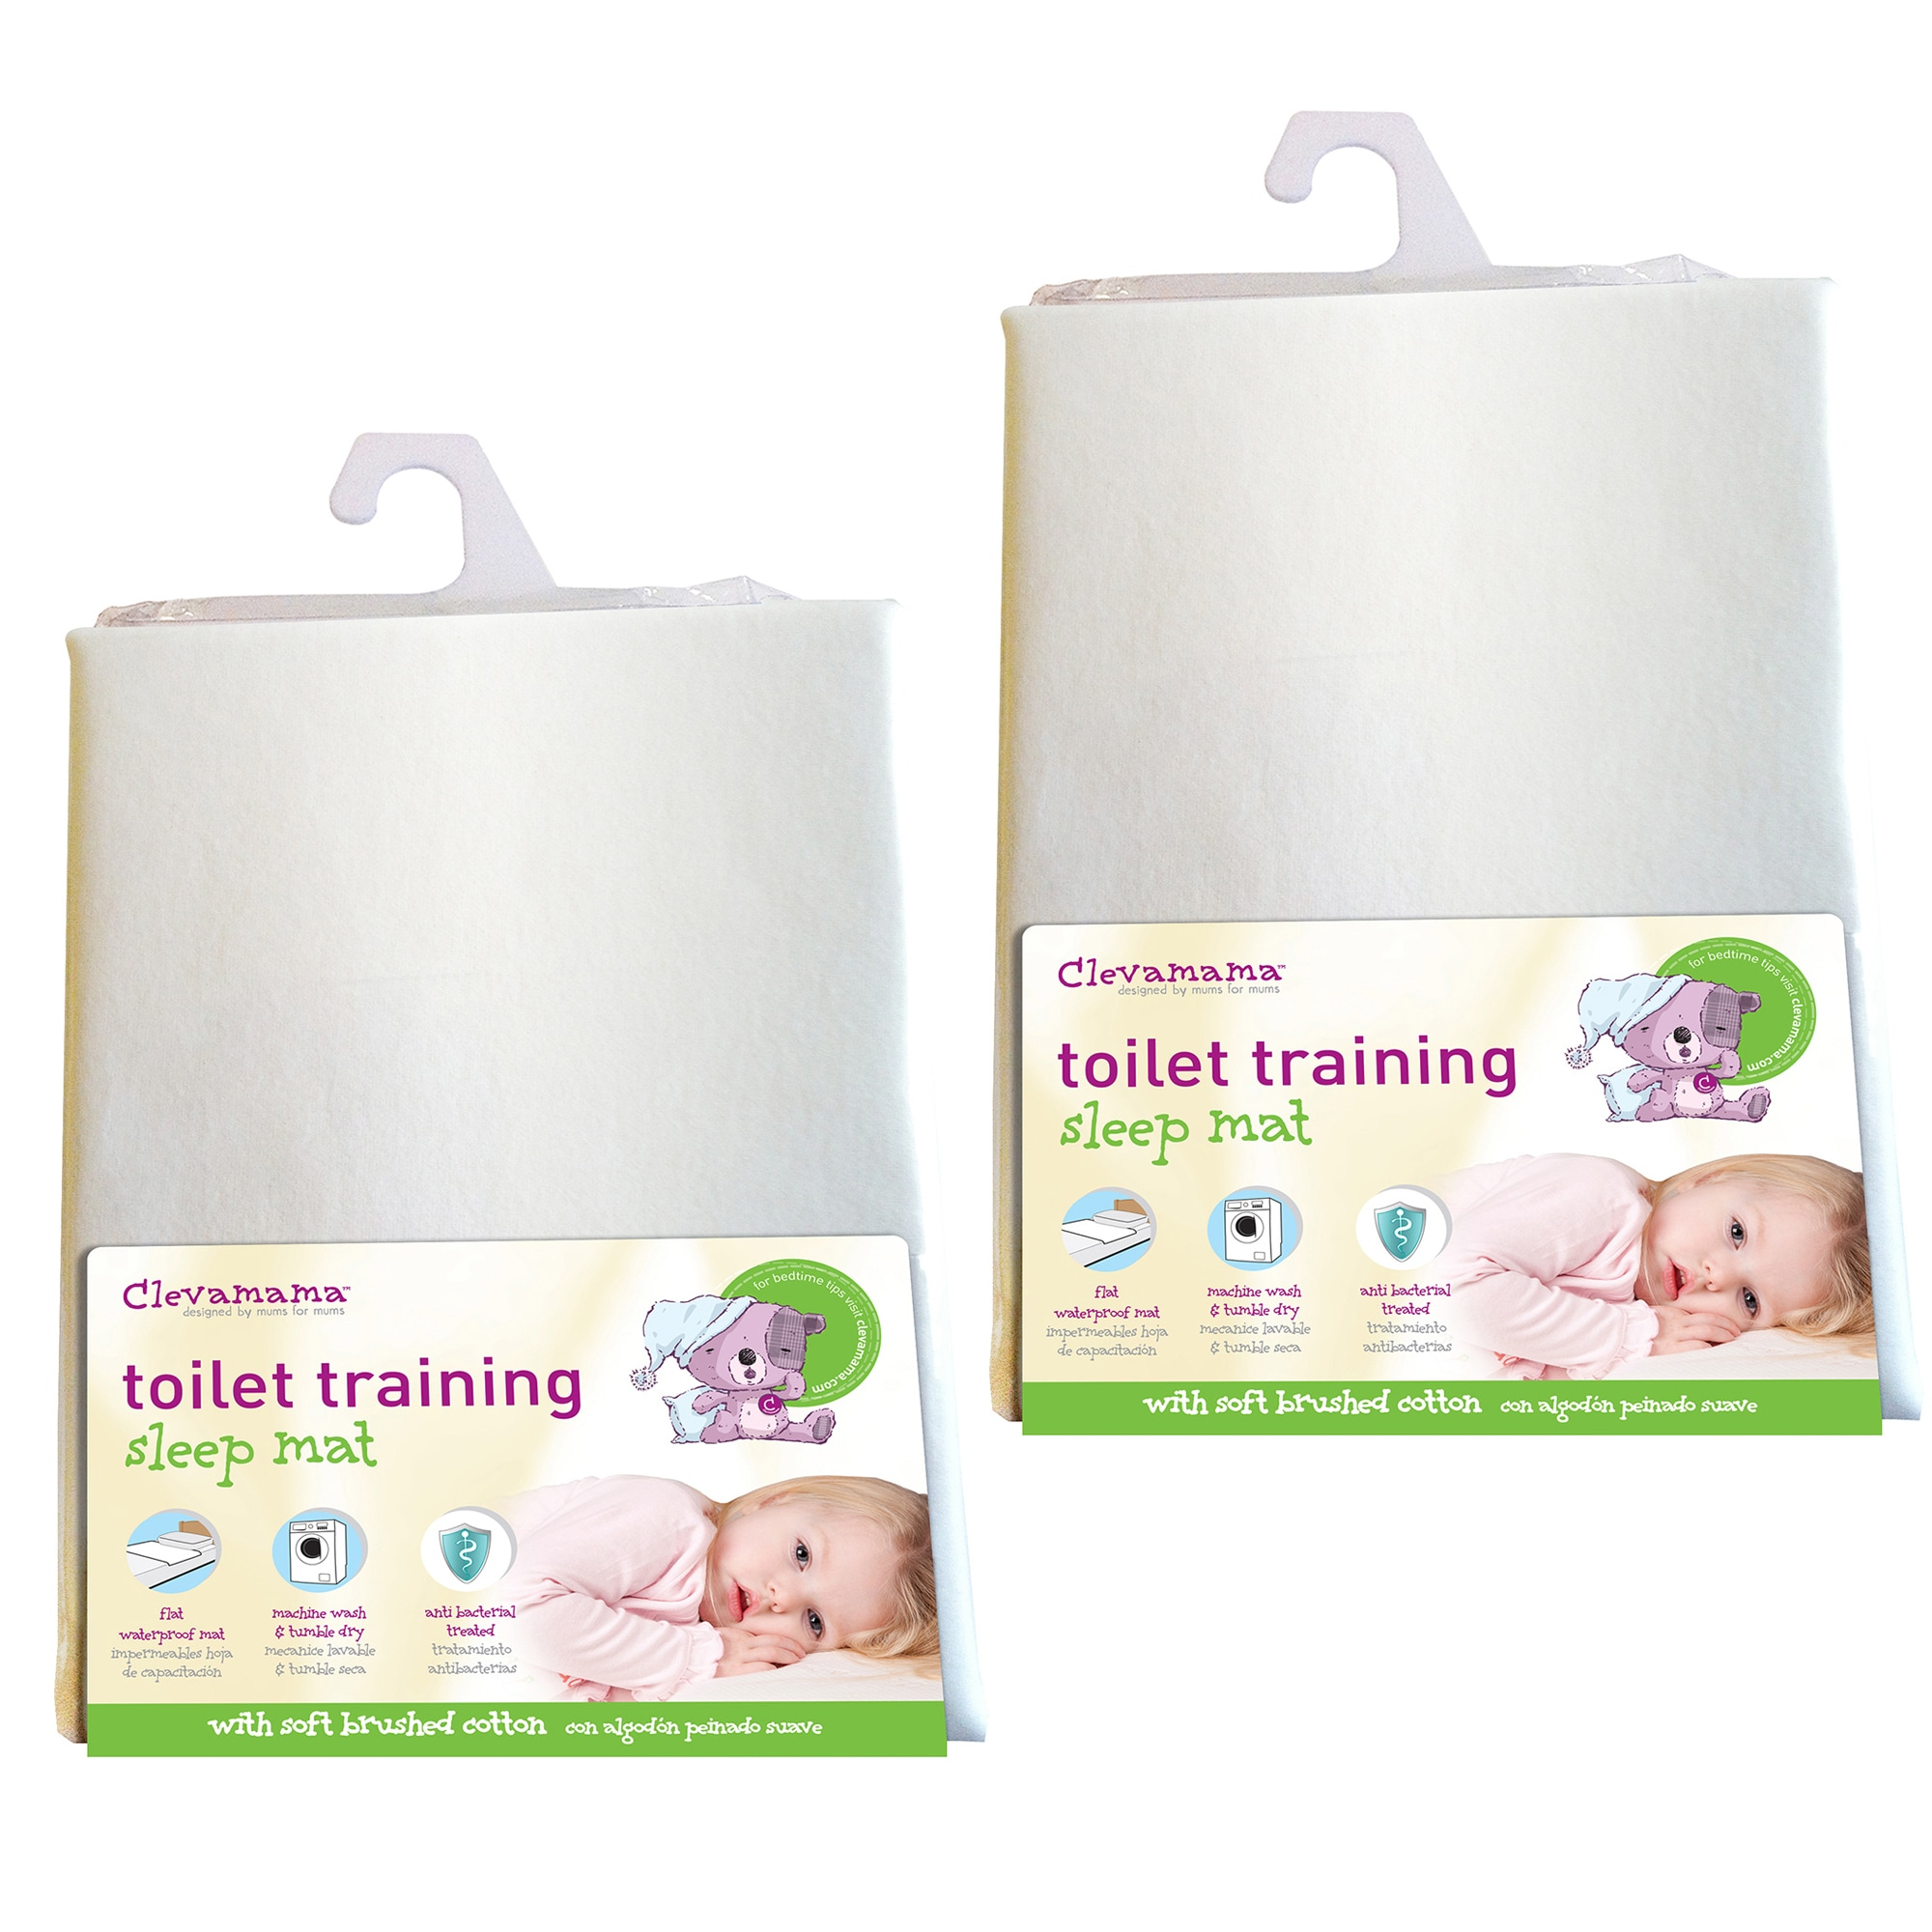 Clevamama Toilet Training Bed Mat (Pack of 2) (CLM00924),...